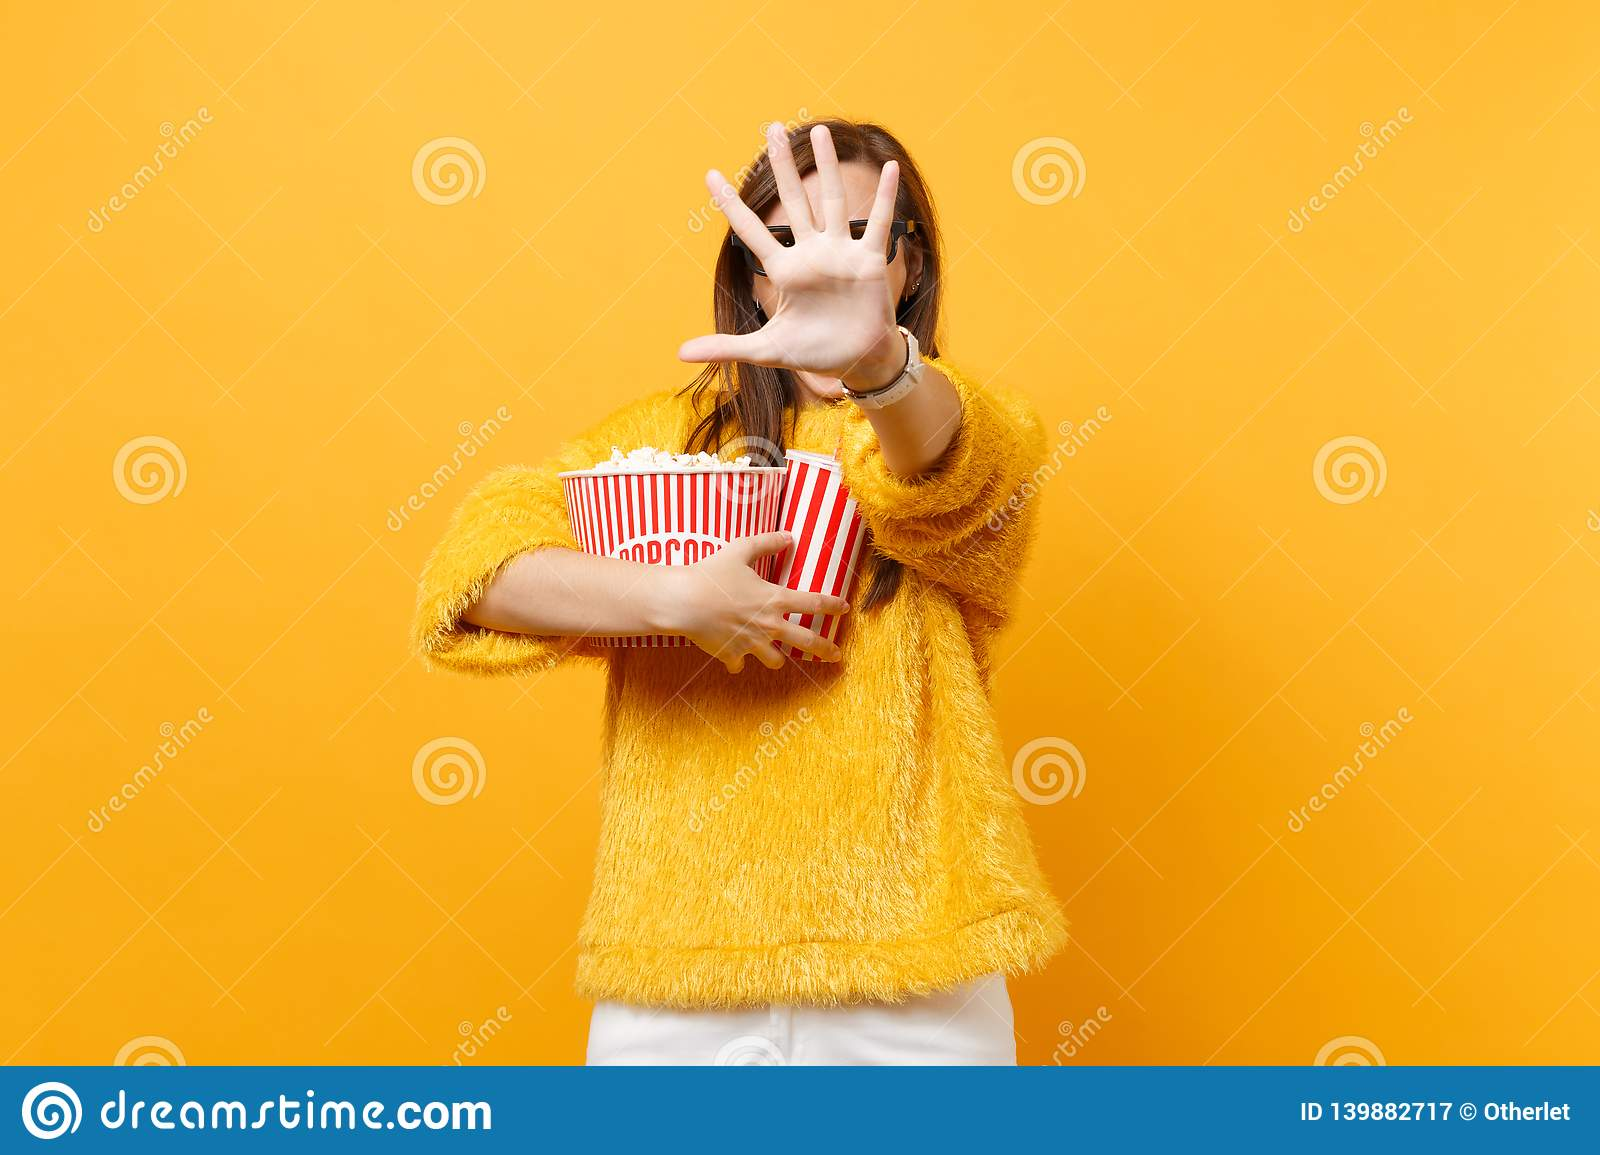 Scared woman in 3d imax glasses closing screen by hand, watching movie film, holding popcorn, plastic cup of cola or